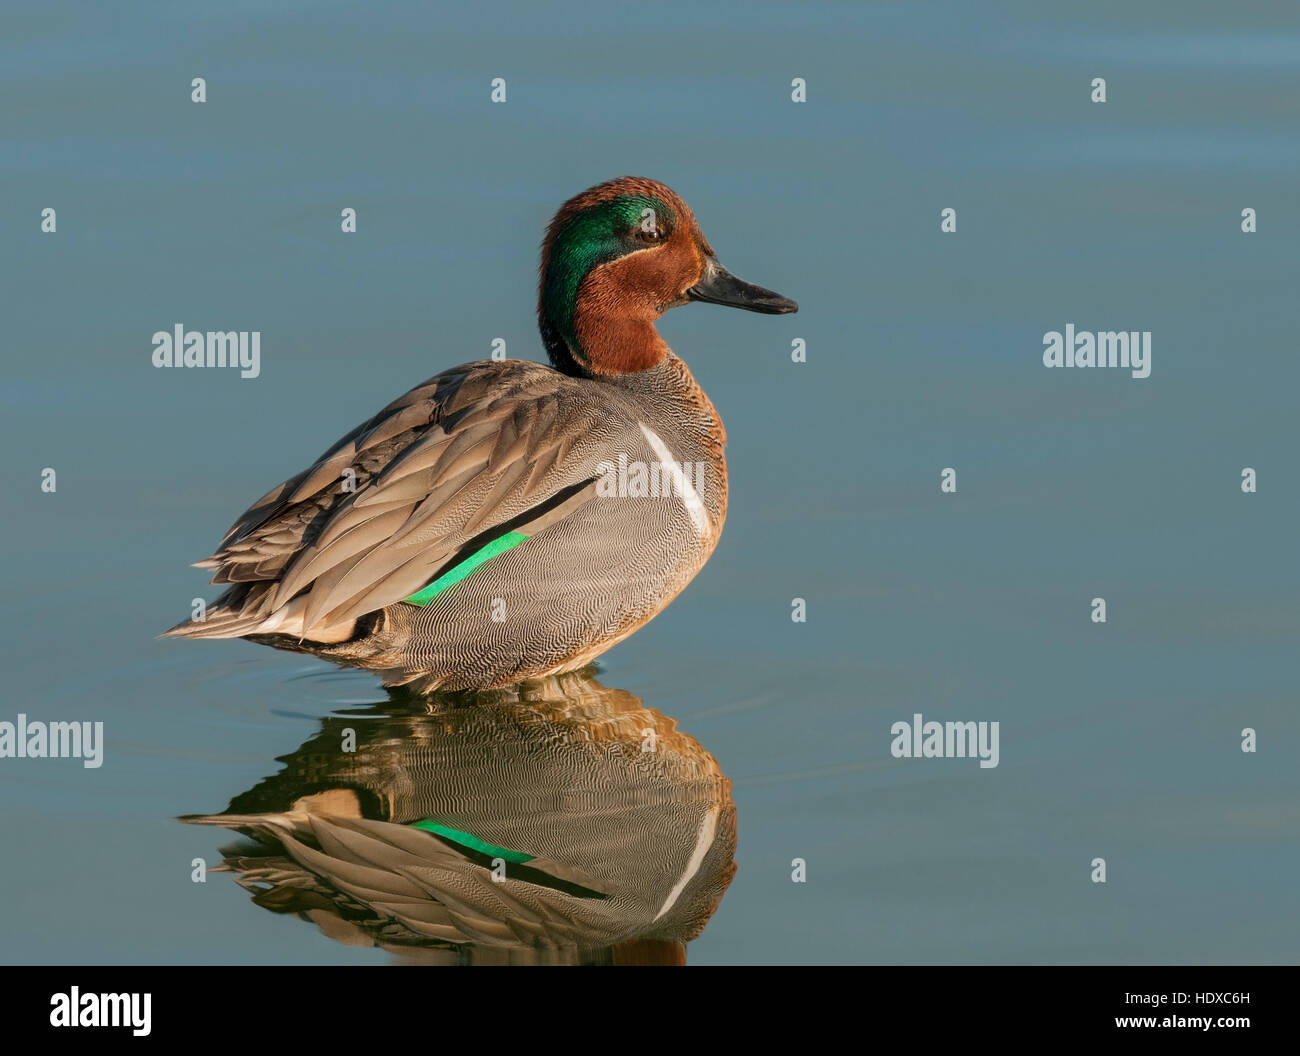 Green-winged teal (Anas carolinensis), male, with reflection - Stock Image